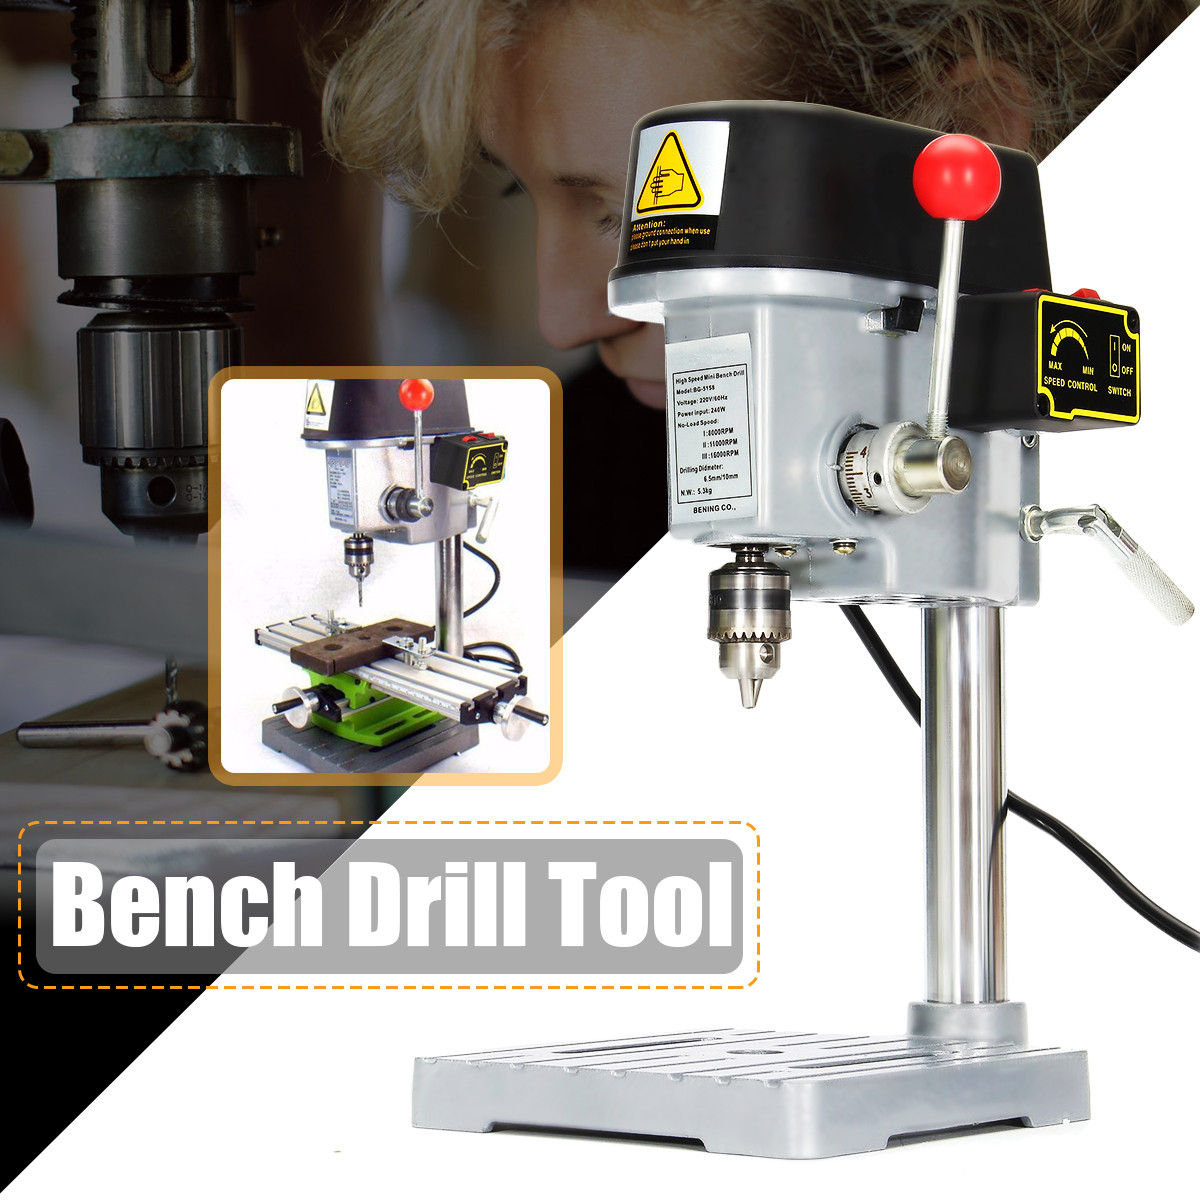 Mini Drill Press 240W for Bench Drilling Machine Variable Speed Drilling Chuck 0.6-6.5mm For DIY Wood Metal Electric ToolsMini Drill Press 240W for Bench Drilling Machine Variable Speed Drilling Chuck 0.6-6.5mm For DIY Wood Metal Electric Tools